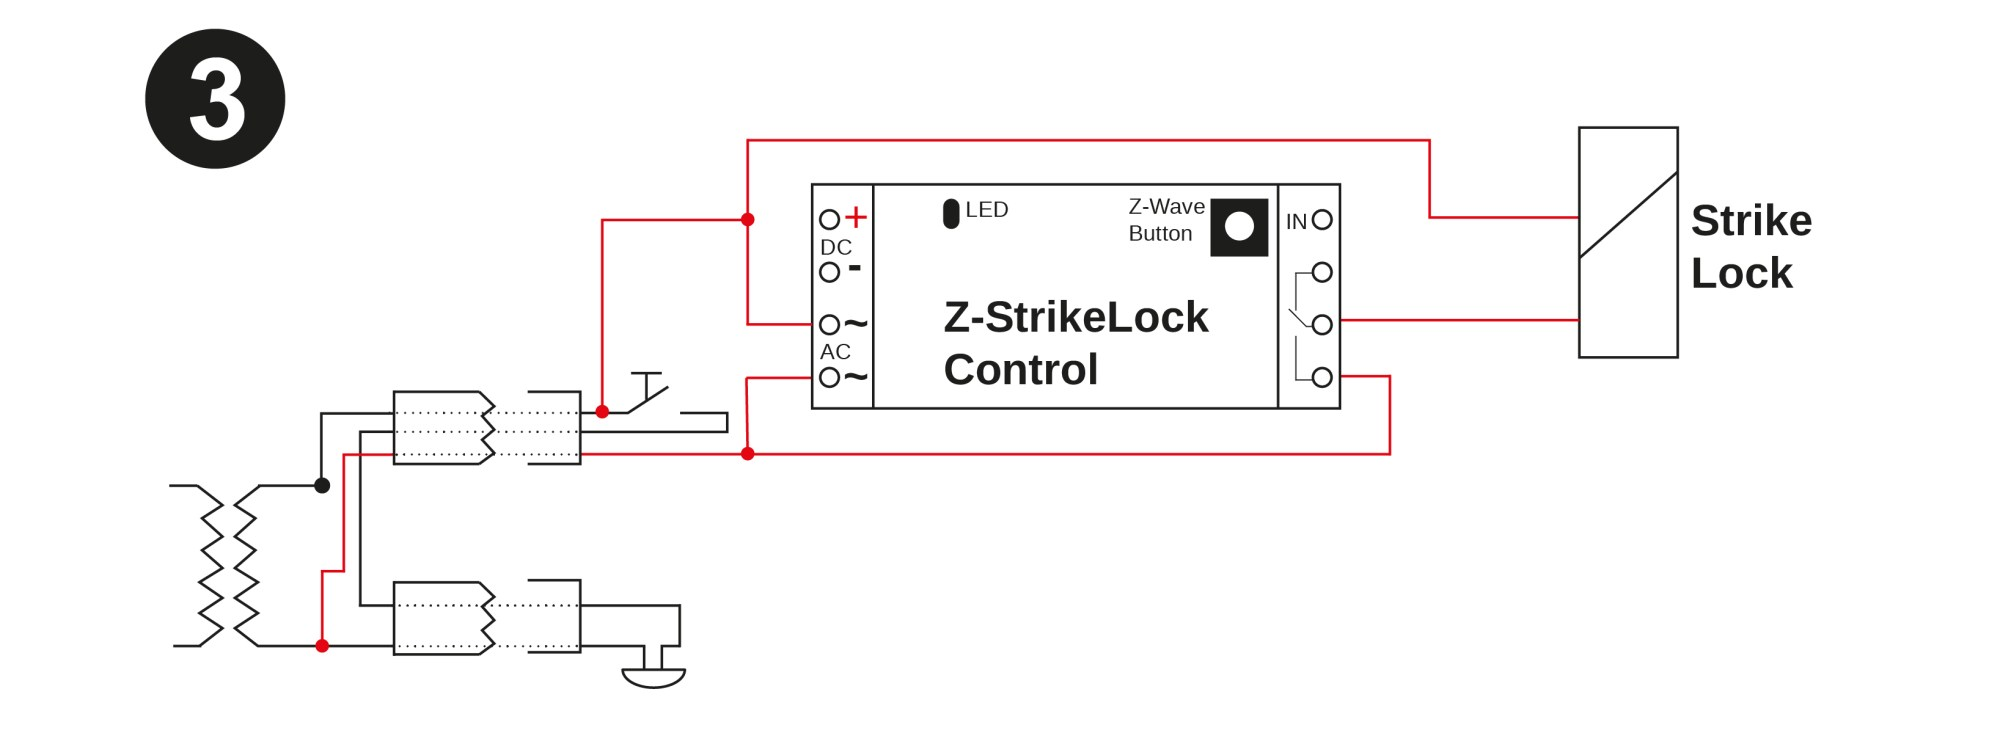 hight resolution of the image below shows how to change this existng cabling to power the strike lock in parallel